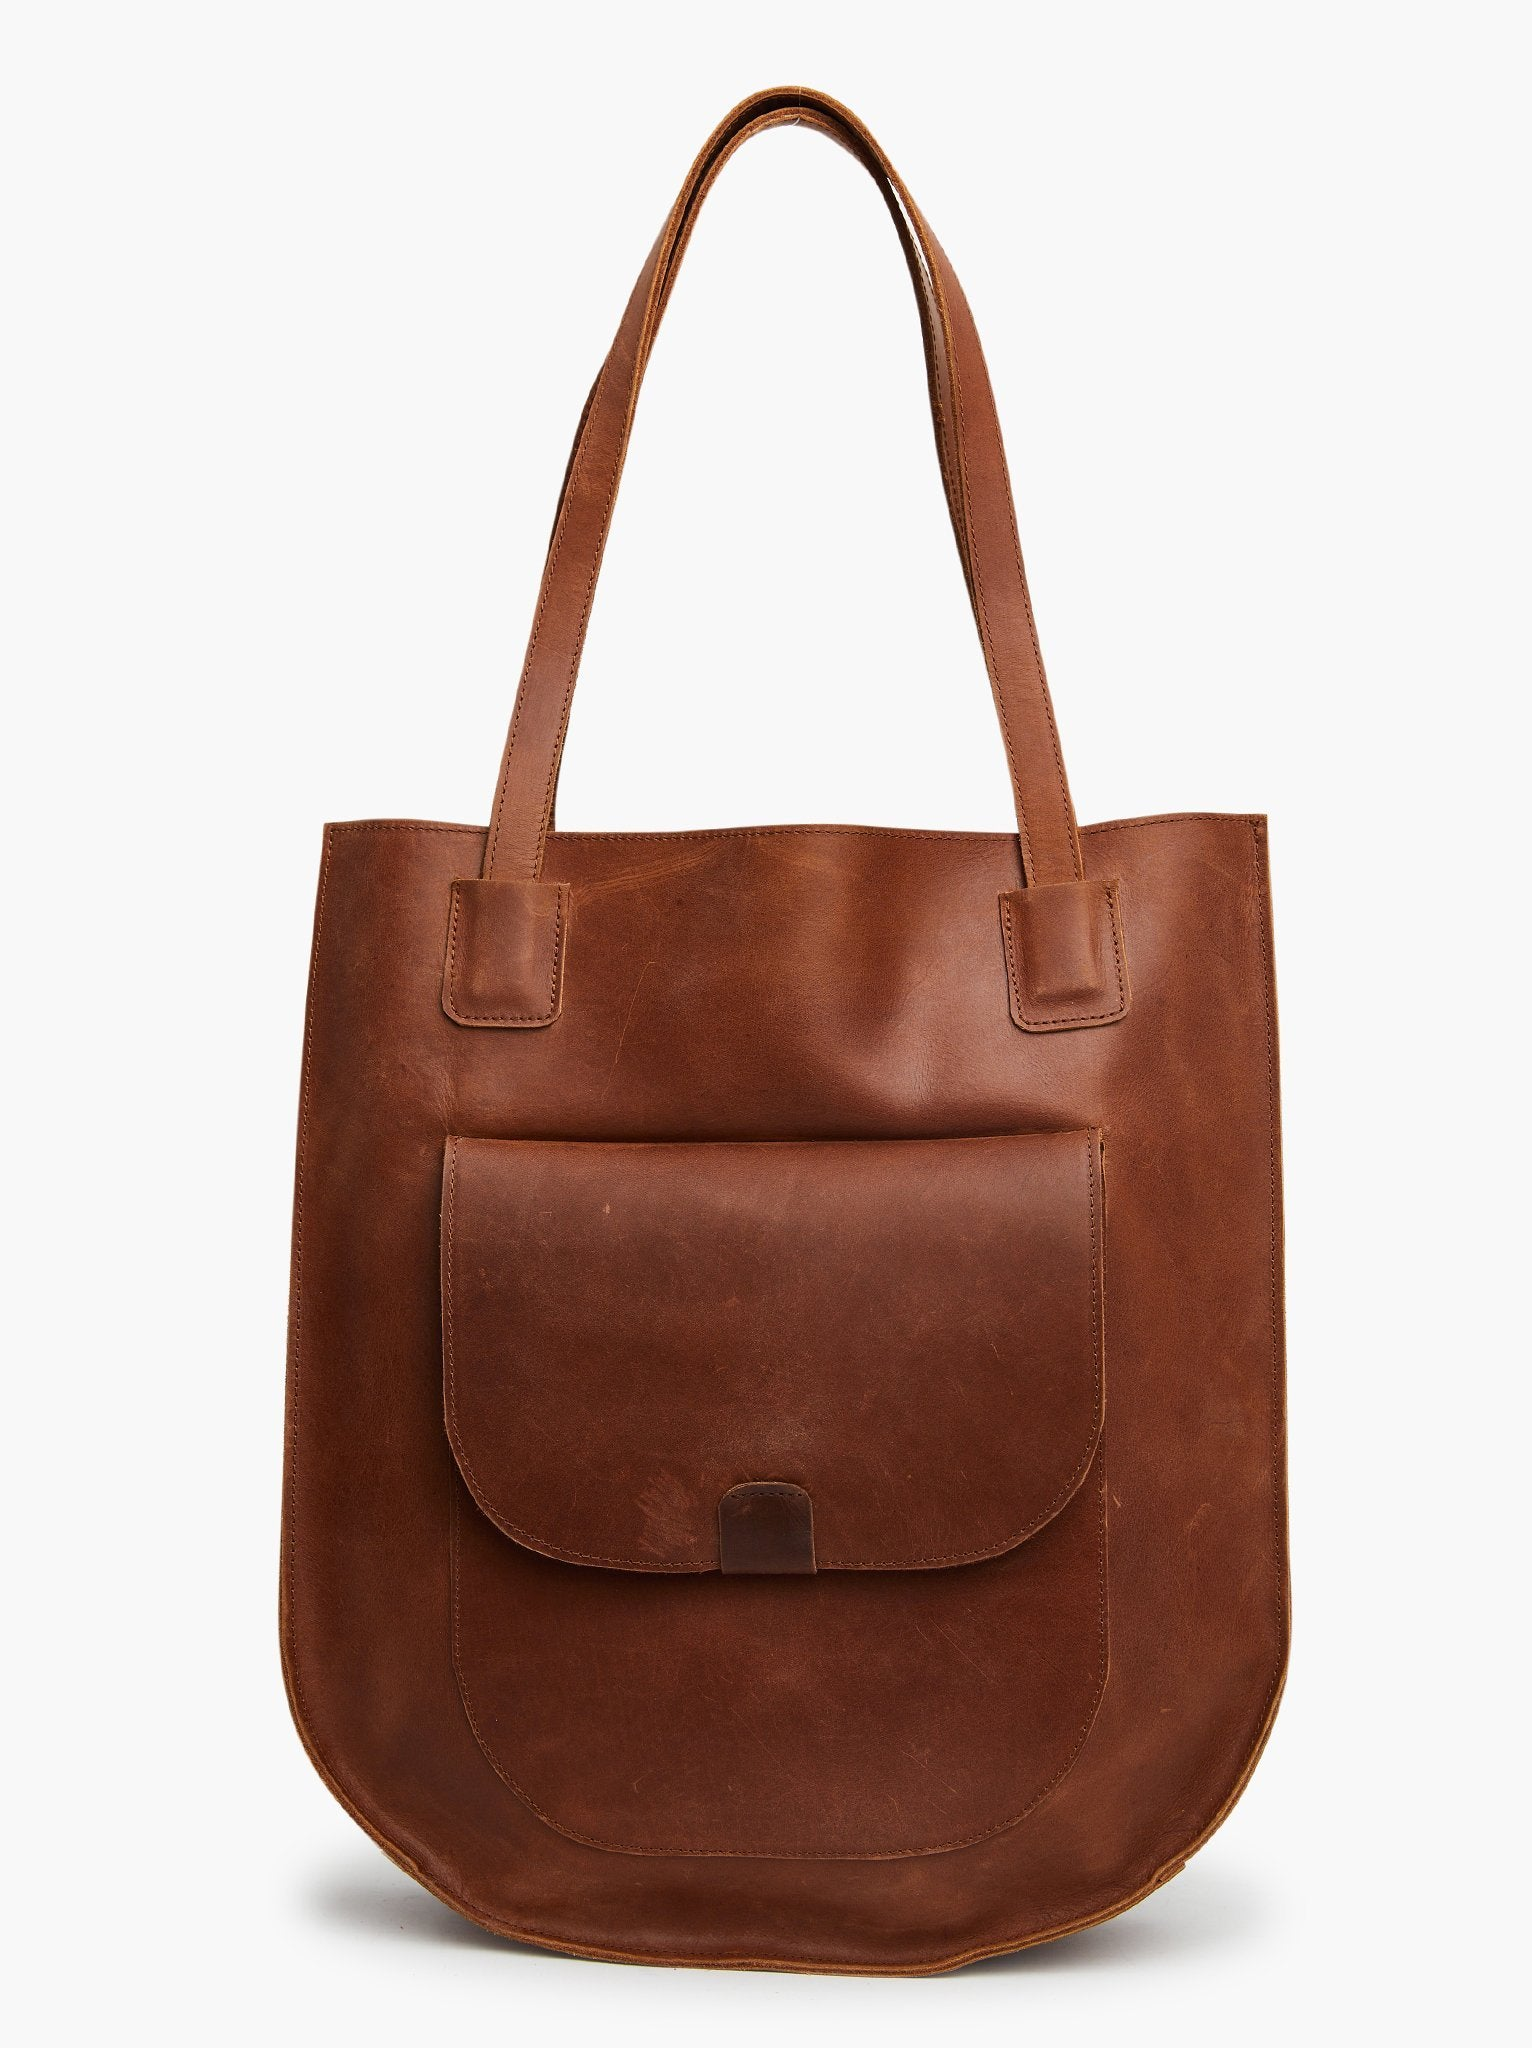 ABLE KENE TOTE - Penny Lane Boutique